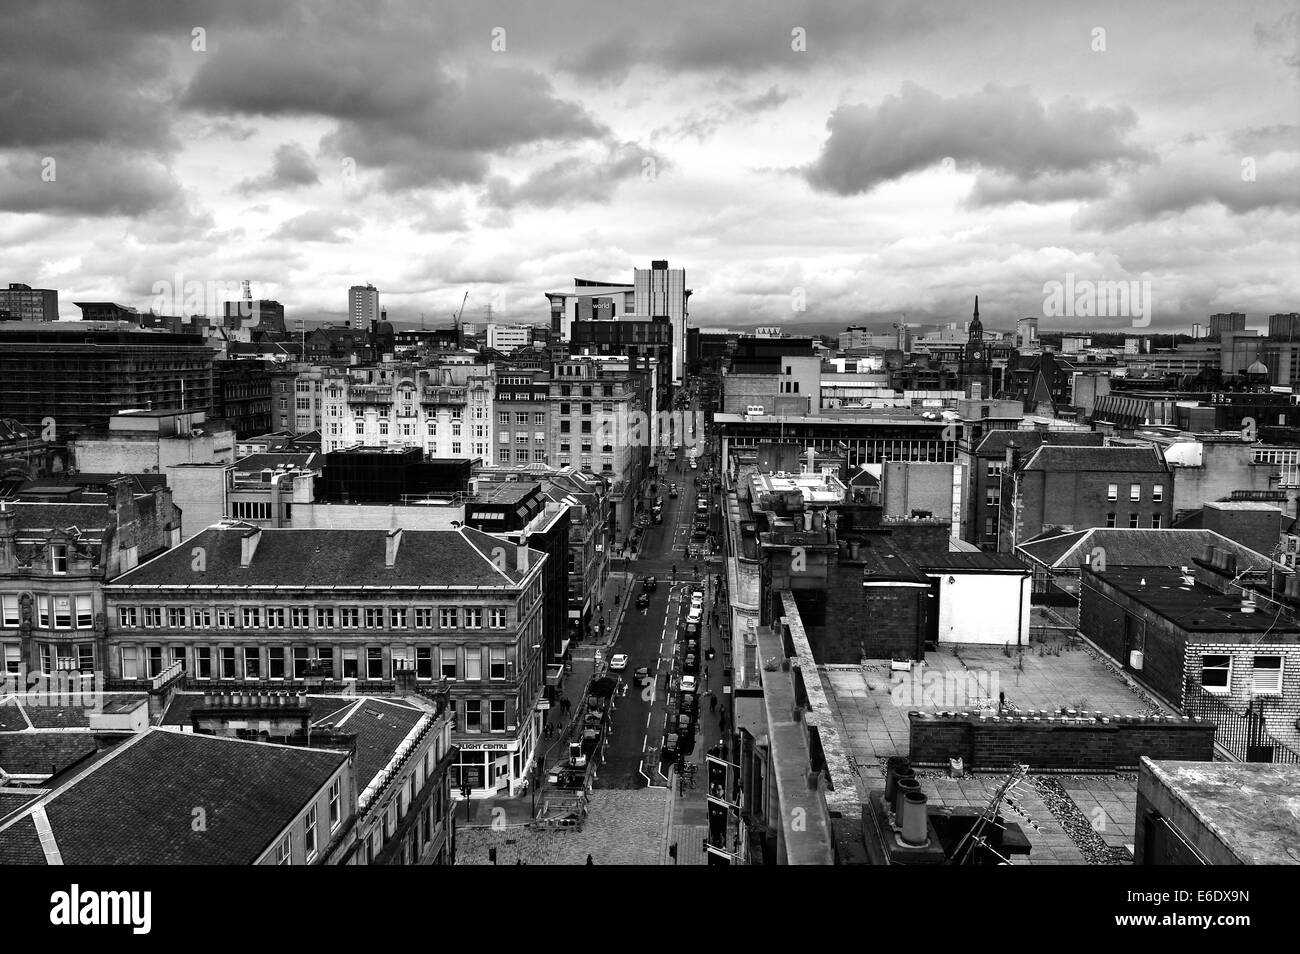 A view of Glasgow city centre from above - Stock Image